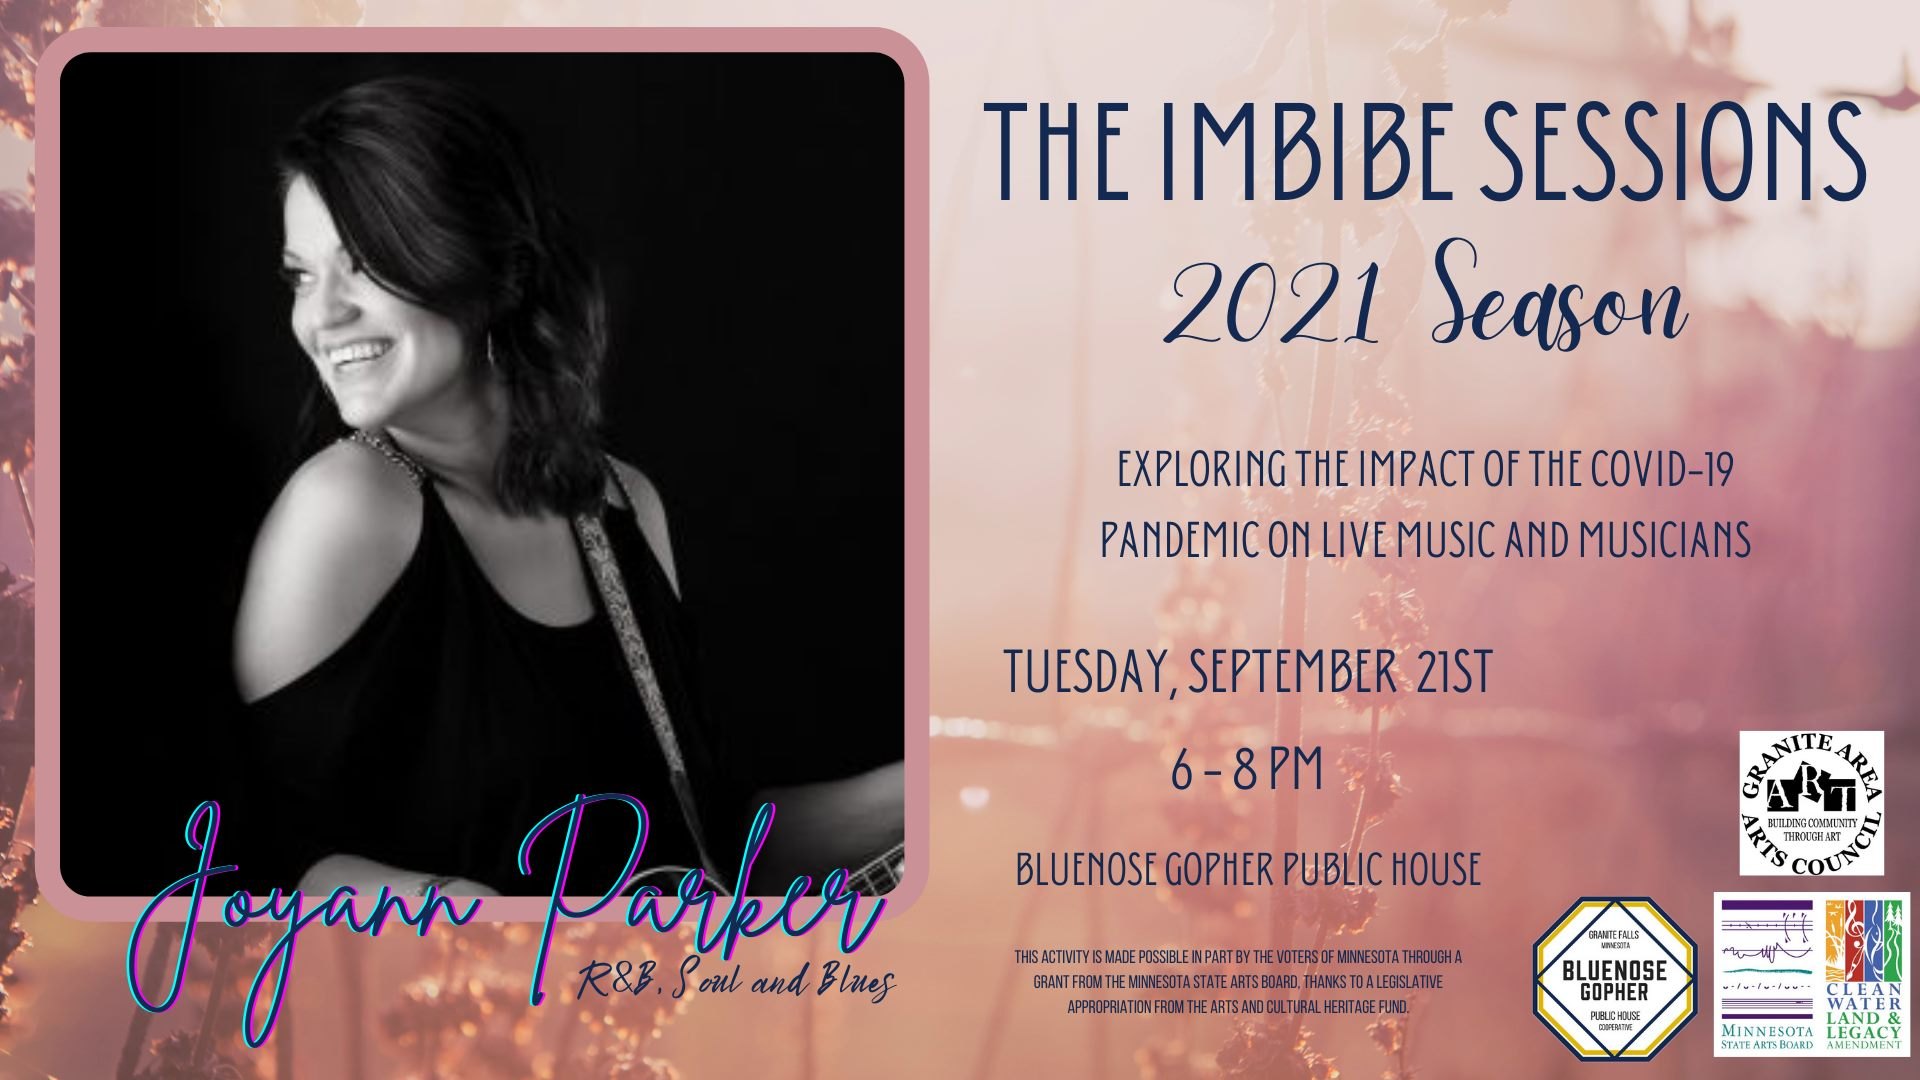 The Imbibe Sessions 2021 Season: Exploring the Impact of the COVID-19 Pandemic on live music and musicians. Tuesday, September 21st, 6-8 pm, Bluenose Gopher Public House. Joyann Parker, R&B Soul and Blues. The Imbibe Sessions are made possible in part by the voters of Minnesota through a grant from the Minnesota State Arts Board thanks to a legislative appropriation from the arts and cultural heritage fund.